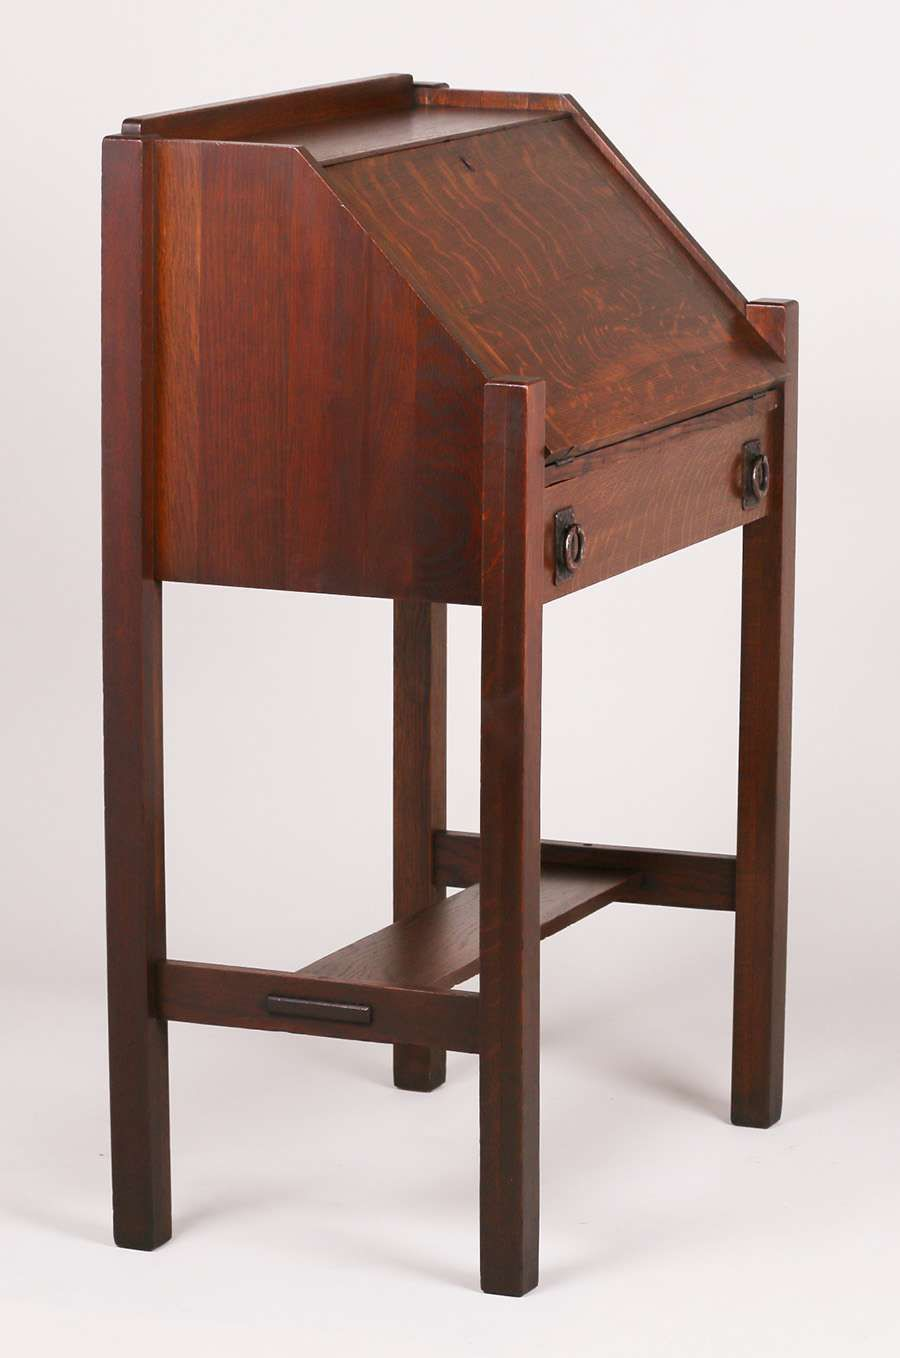 Lifetime Furniture Co Small Drop Front Desk C1910 Shaker Style Furniture Arts And Crafts Furniture Craftsman Style Furniture